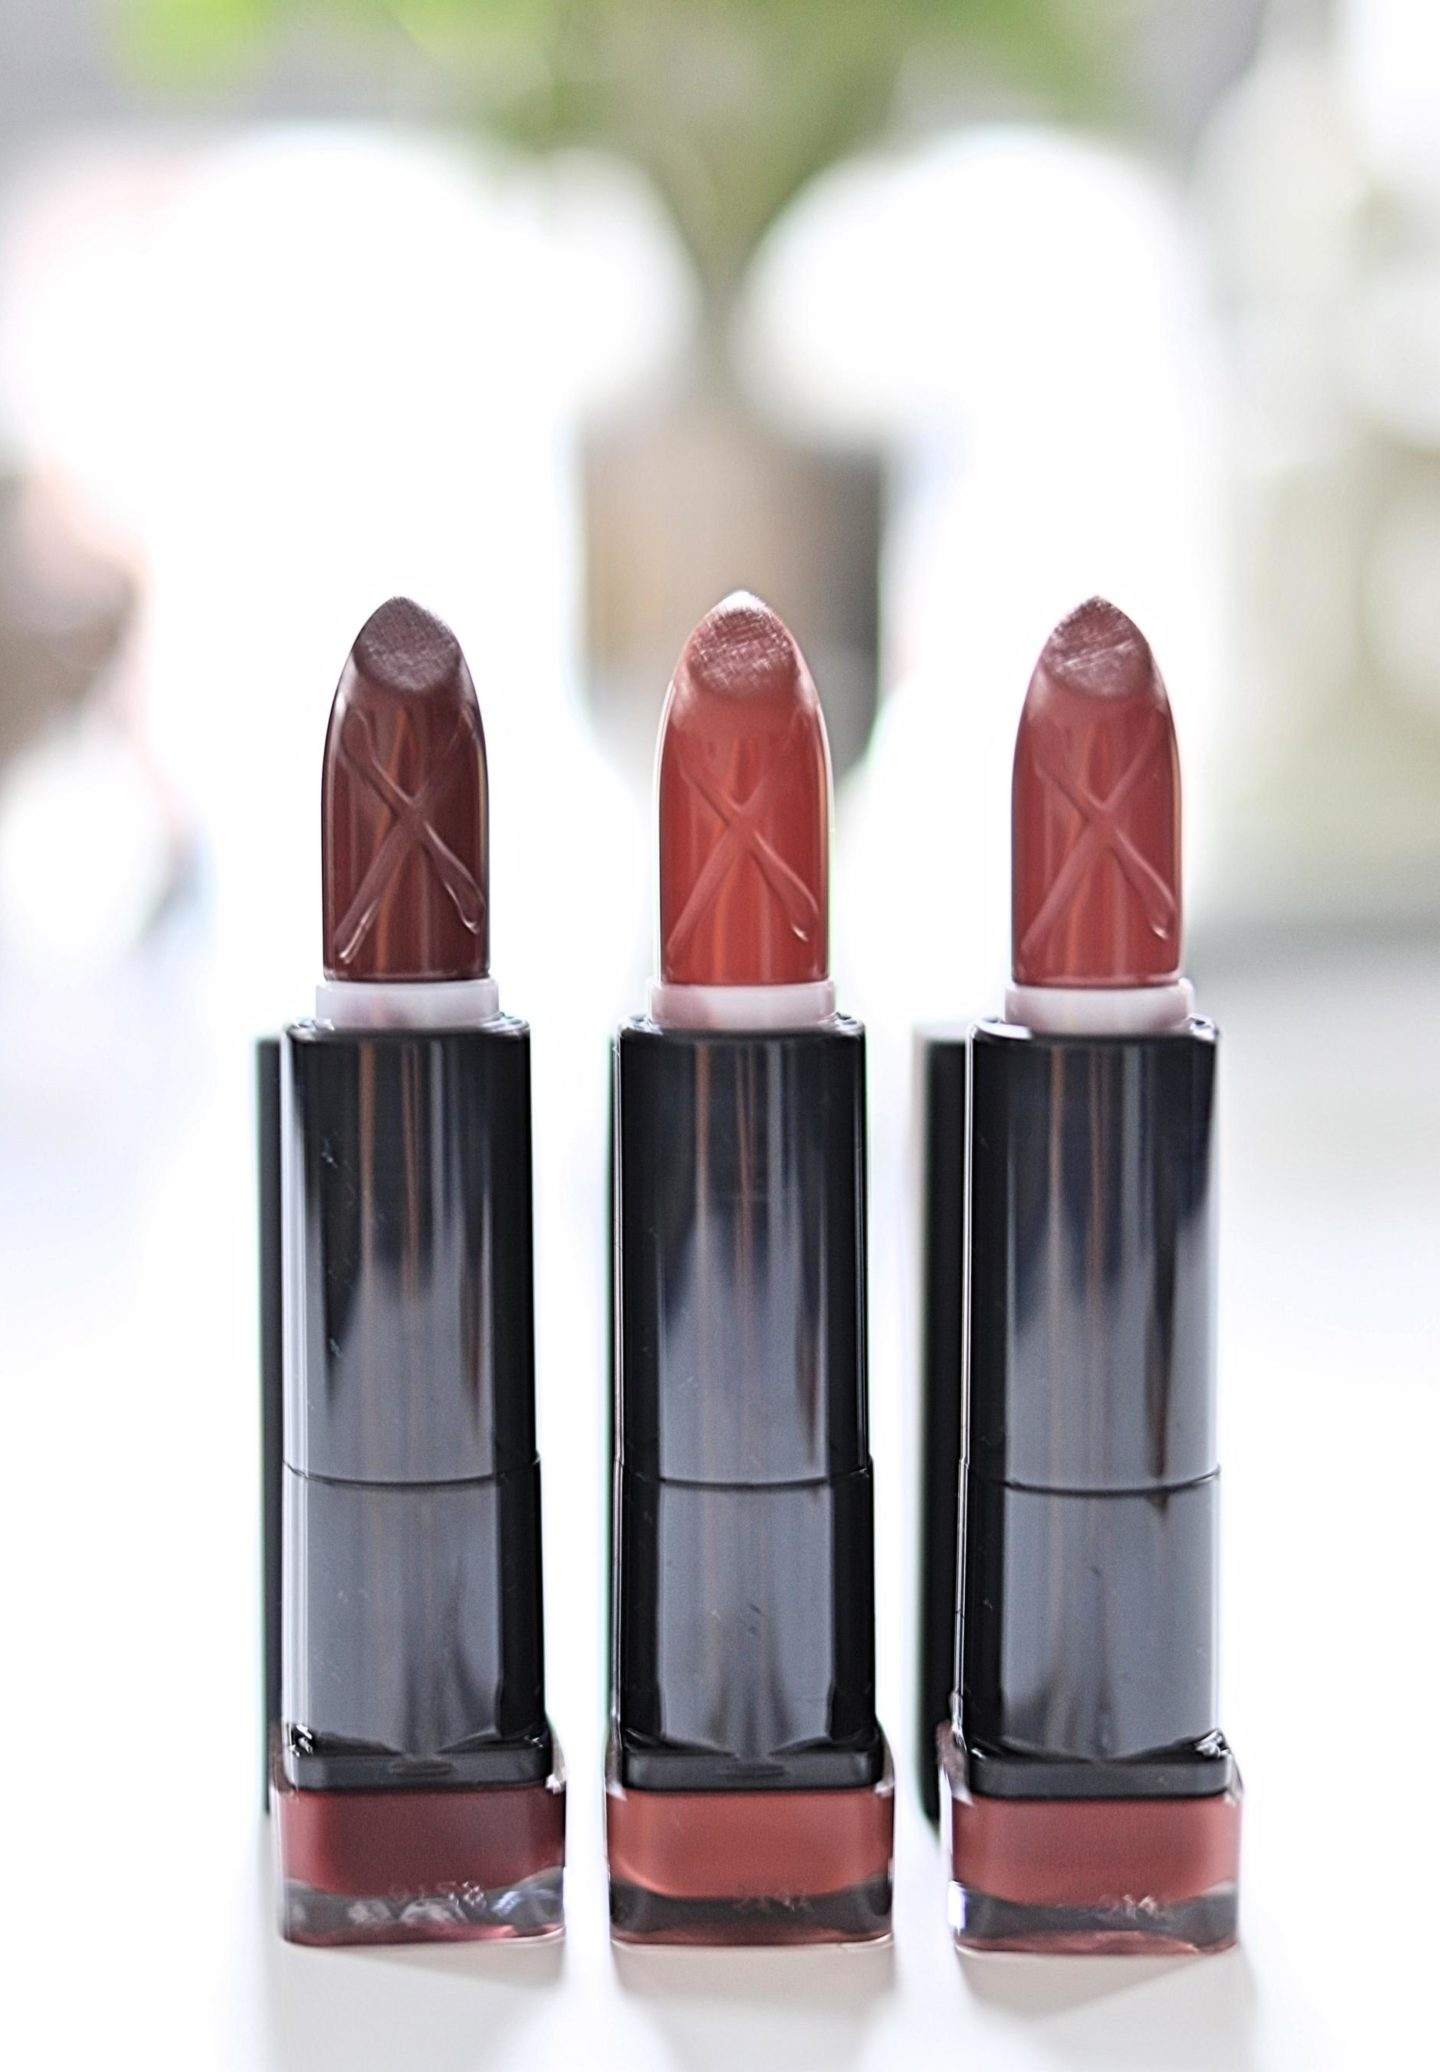 Three beautiful Color Elixir Velvet Matte Lipstick shades from Max Factor!